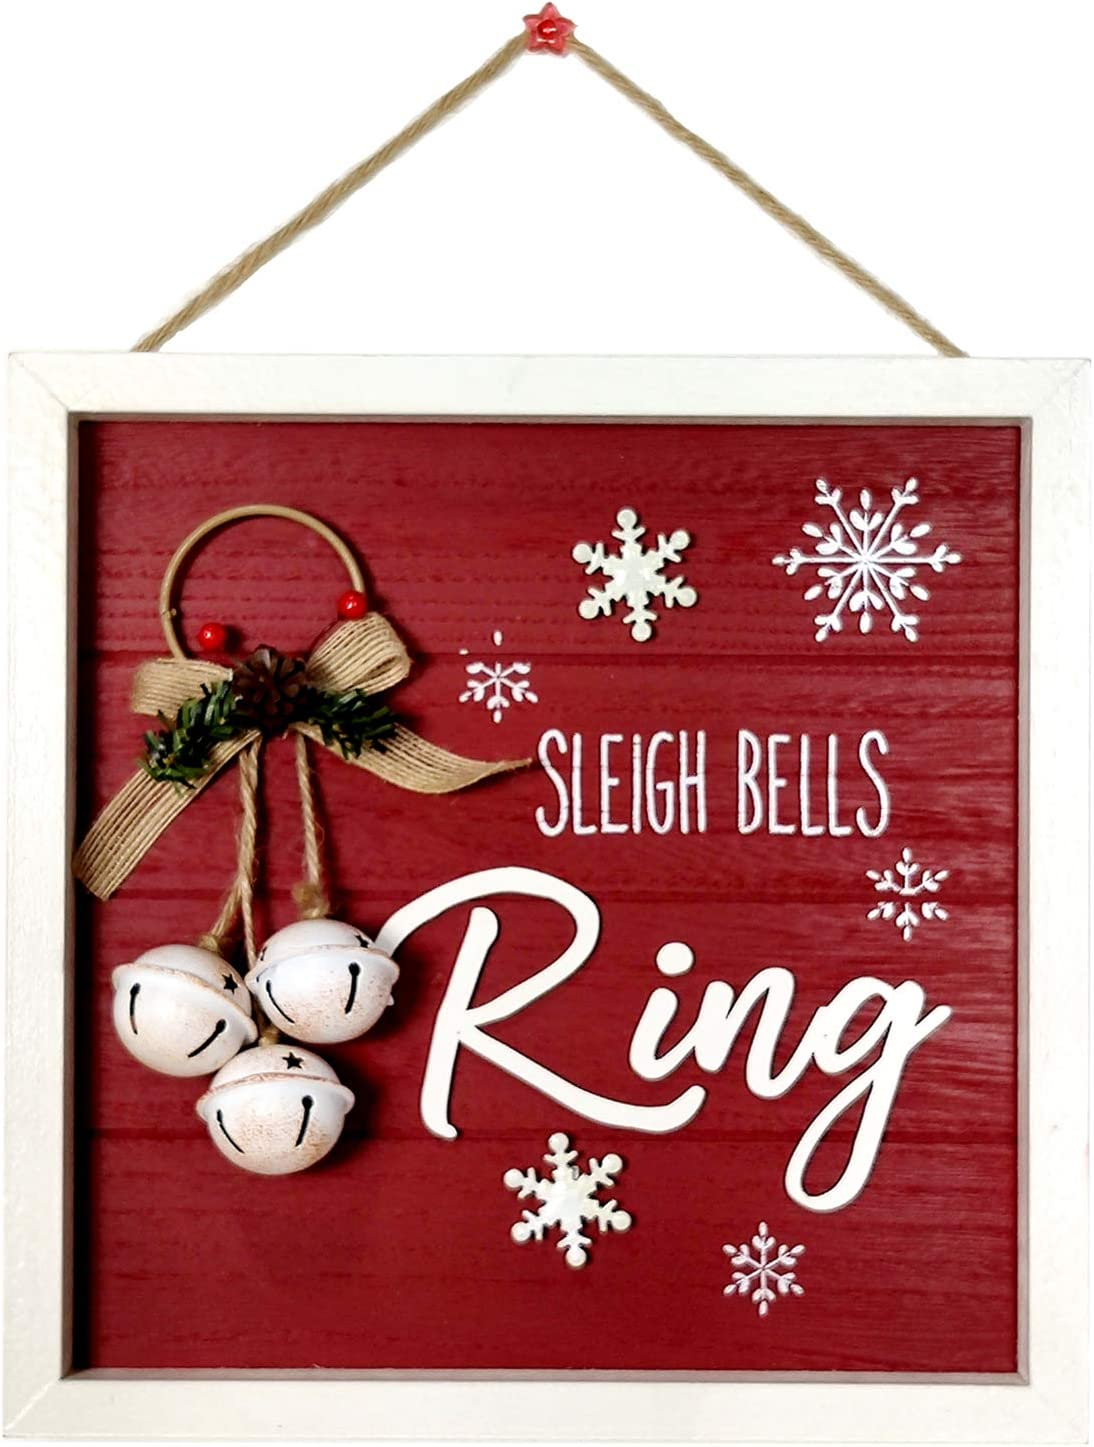 HOMirable Christmas Wall Décor, Sleigh Bells Ring Wooden Home Wall Sign, Rustic Snowman Holiday Red Hanging Sign, Winter Snow Decorative Farmhouse Ornament Wall Art Plaque Gift